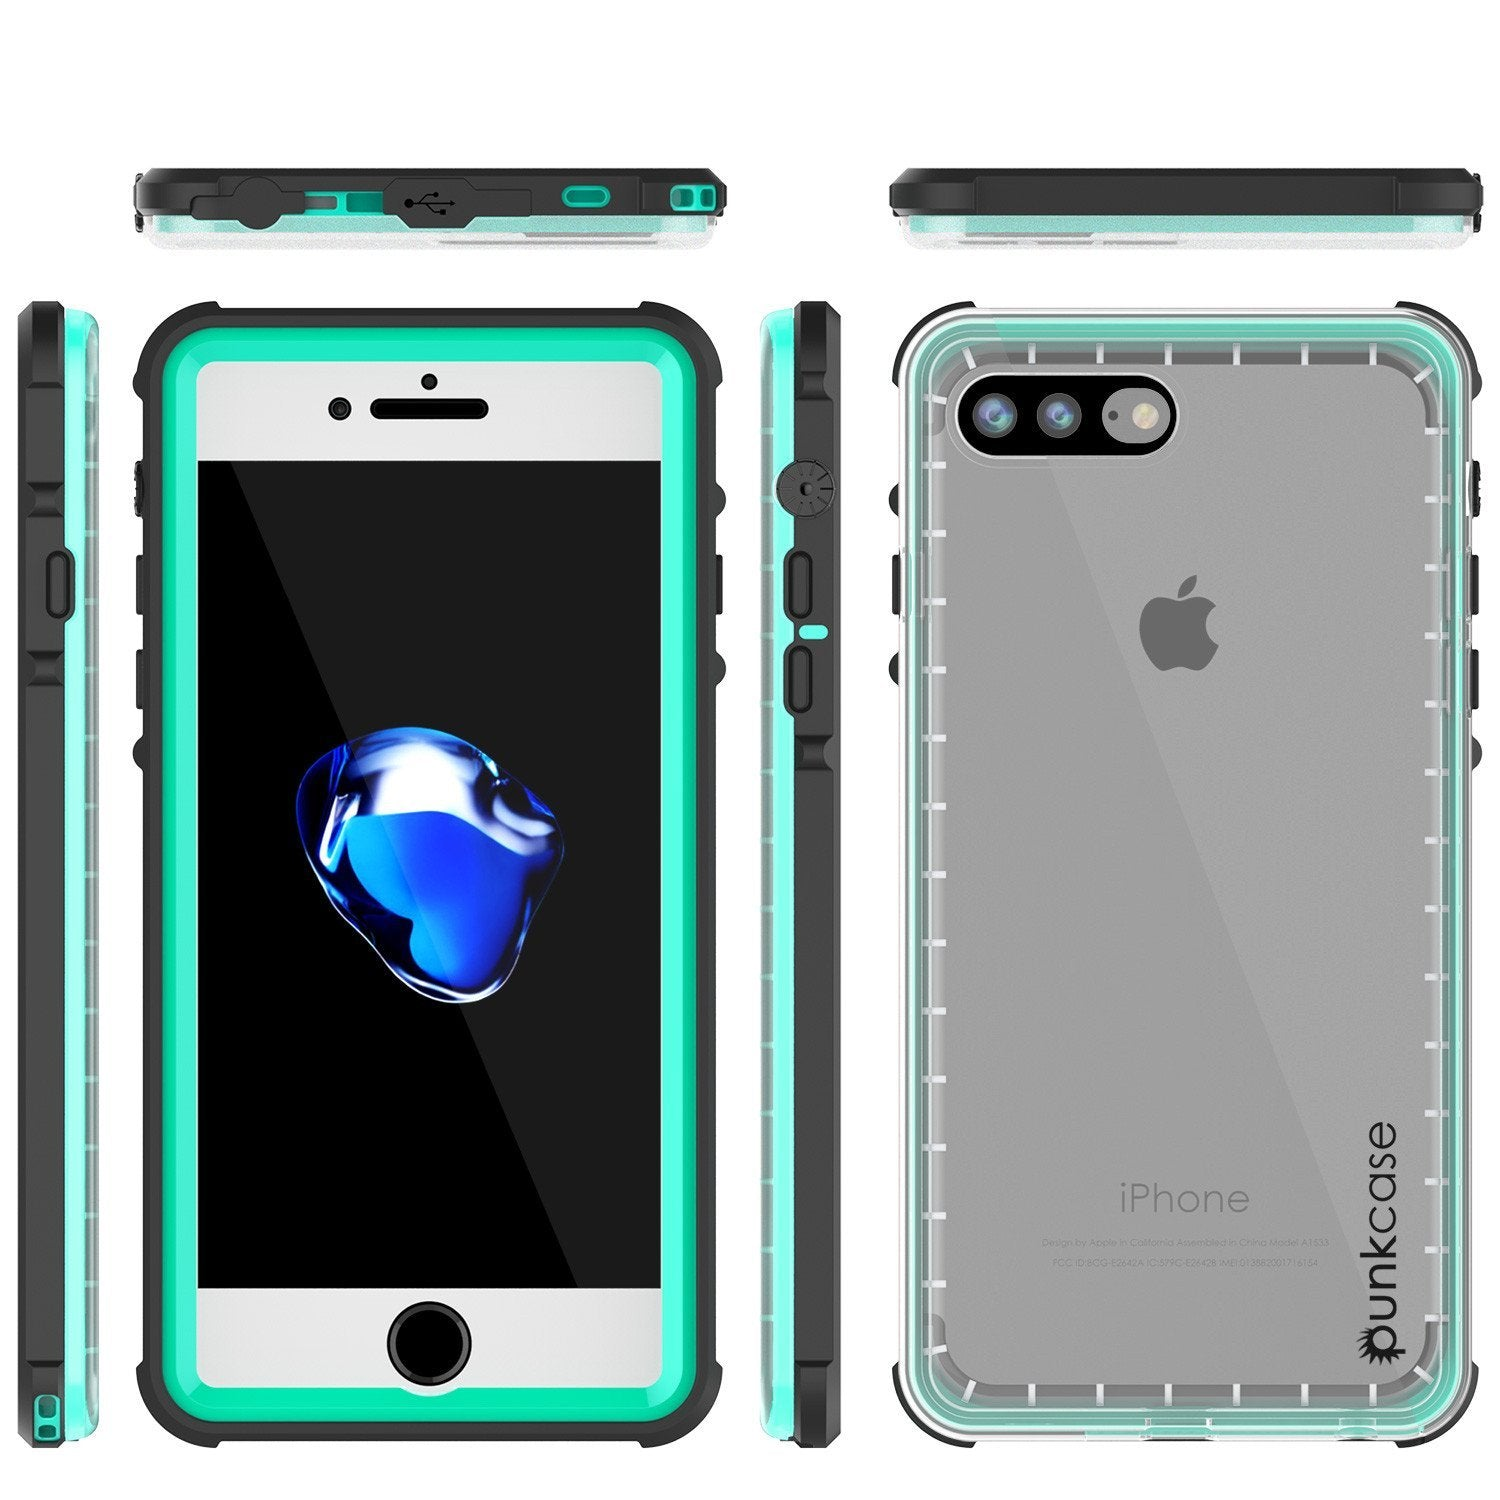 iPhone 8+ Plus Waterproof Case, PUNKcase CRYSTAL Teal W/ Attached Screen Protector  | Warranty - PunkCase NZ